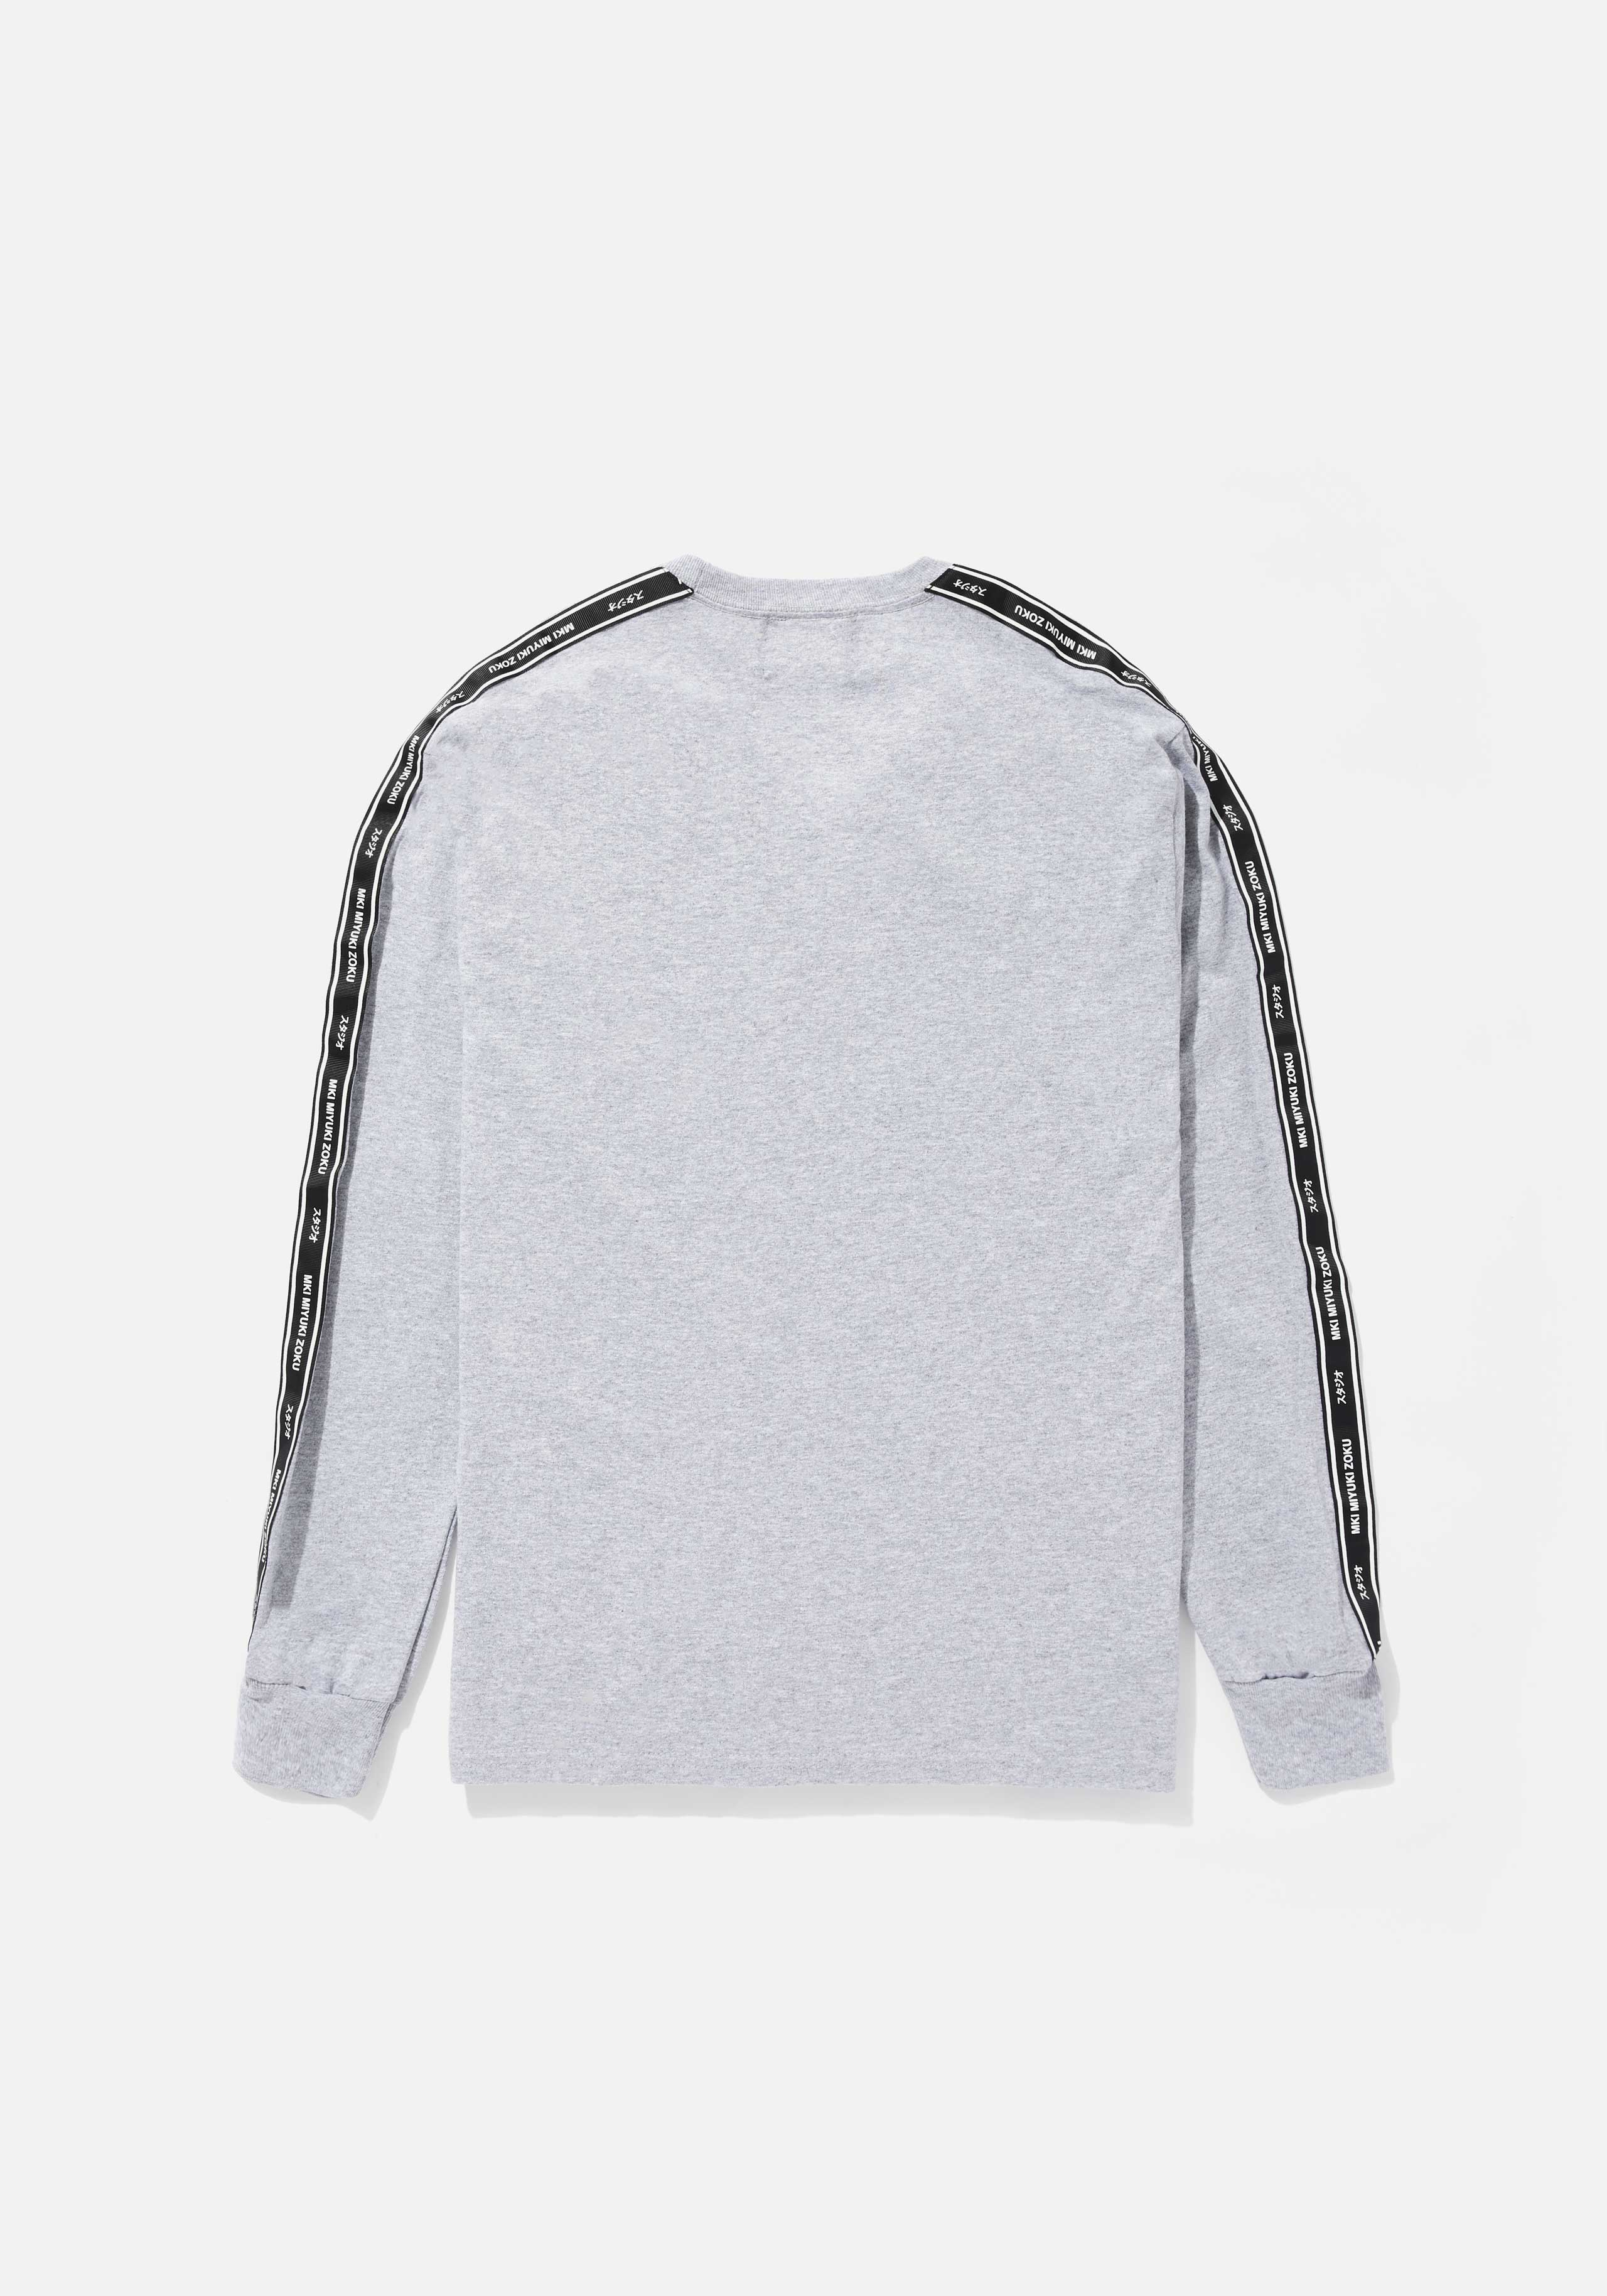 mki tape long sleeve 2